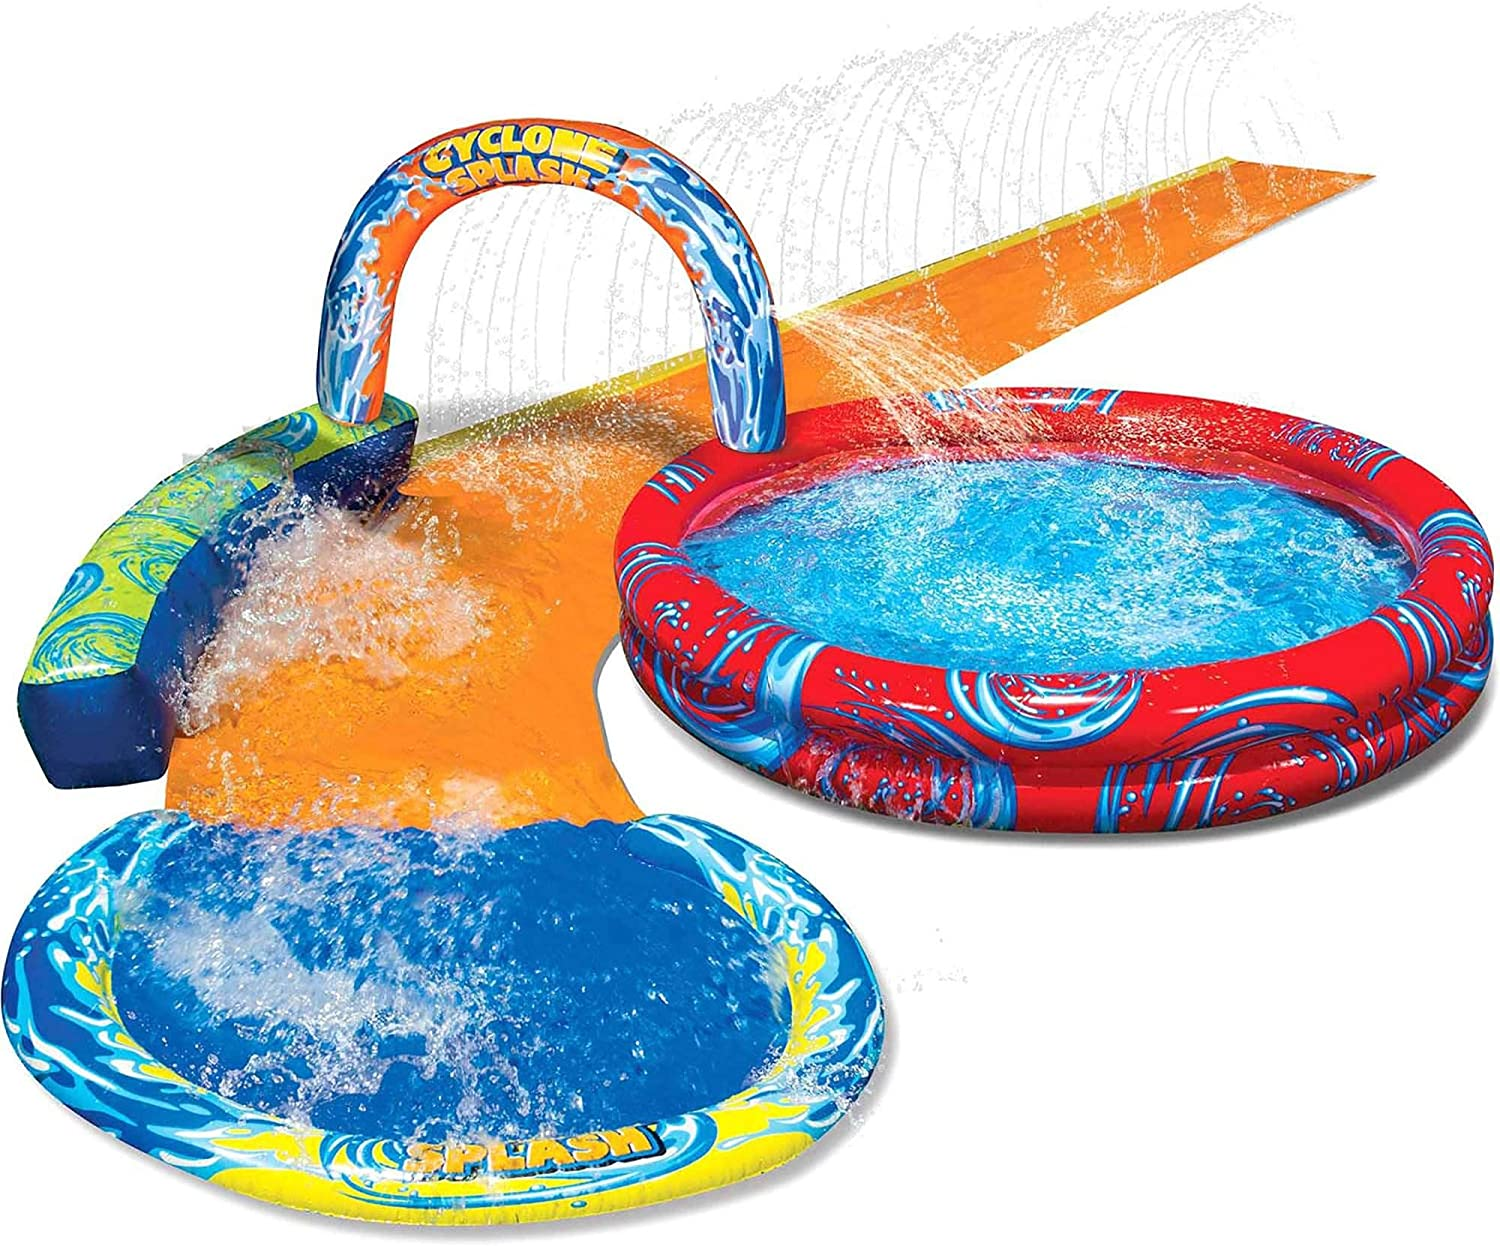 #9. BANZAI Cyclone Splash Inflatable Park